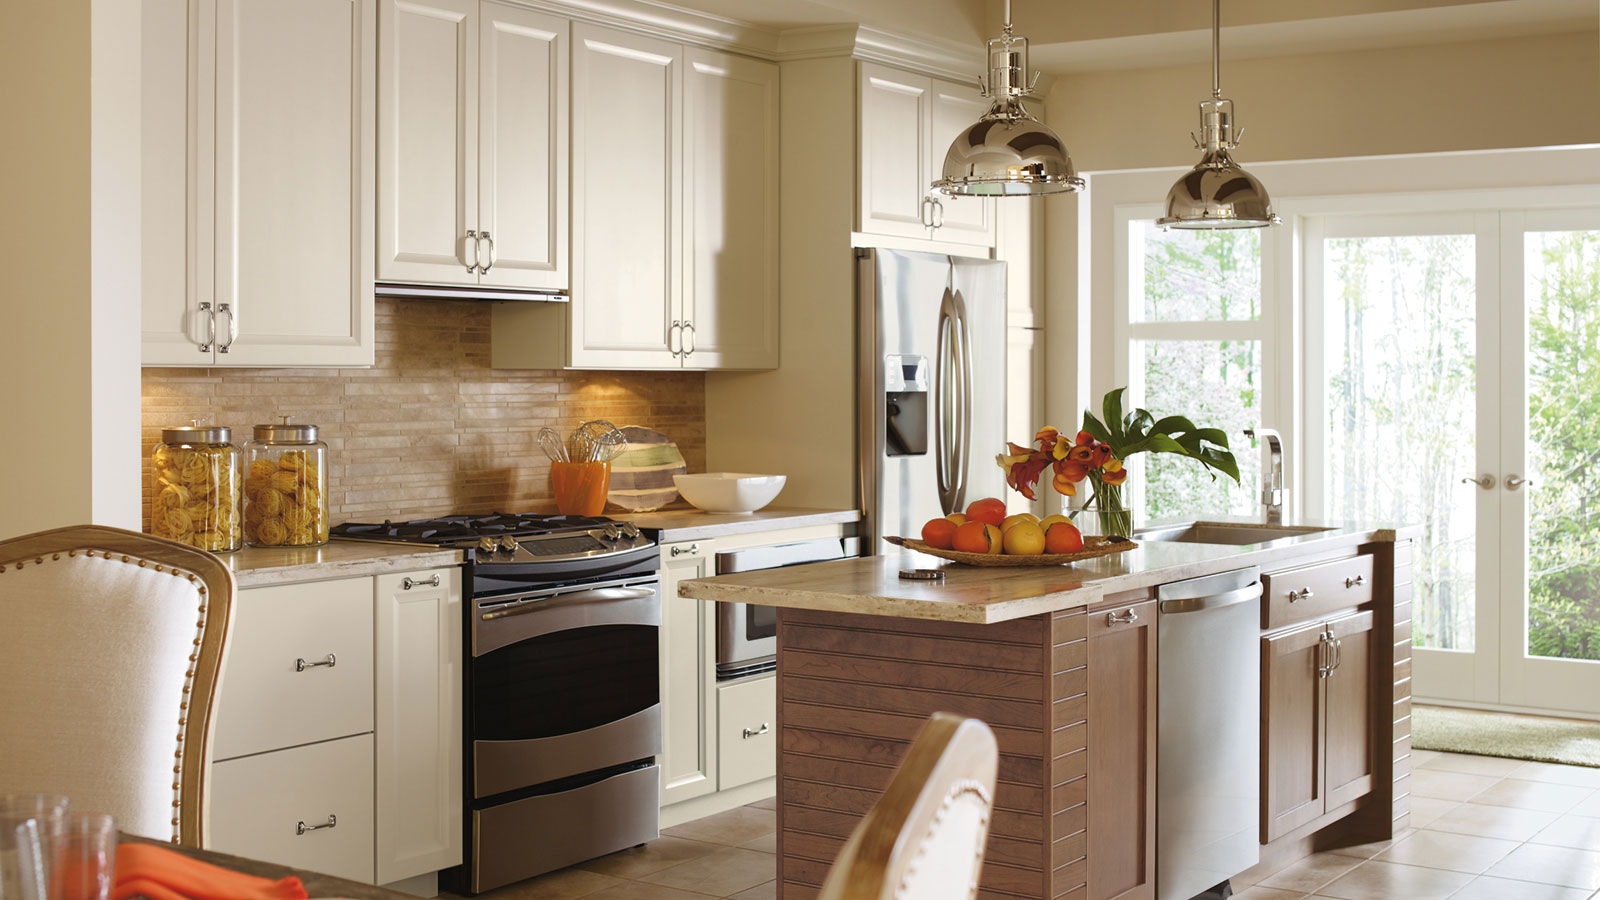 Painted Maple Cabinets In A Casual Kitchen Omega